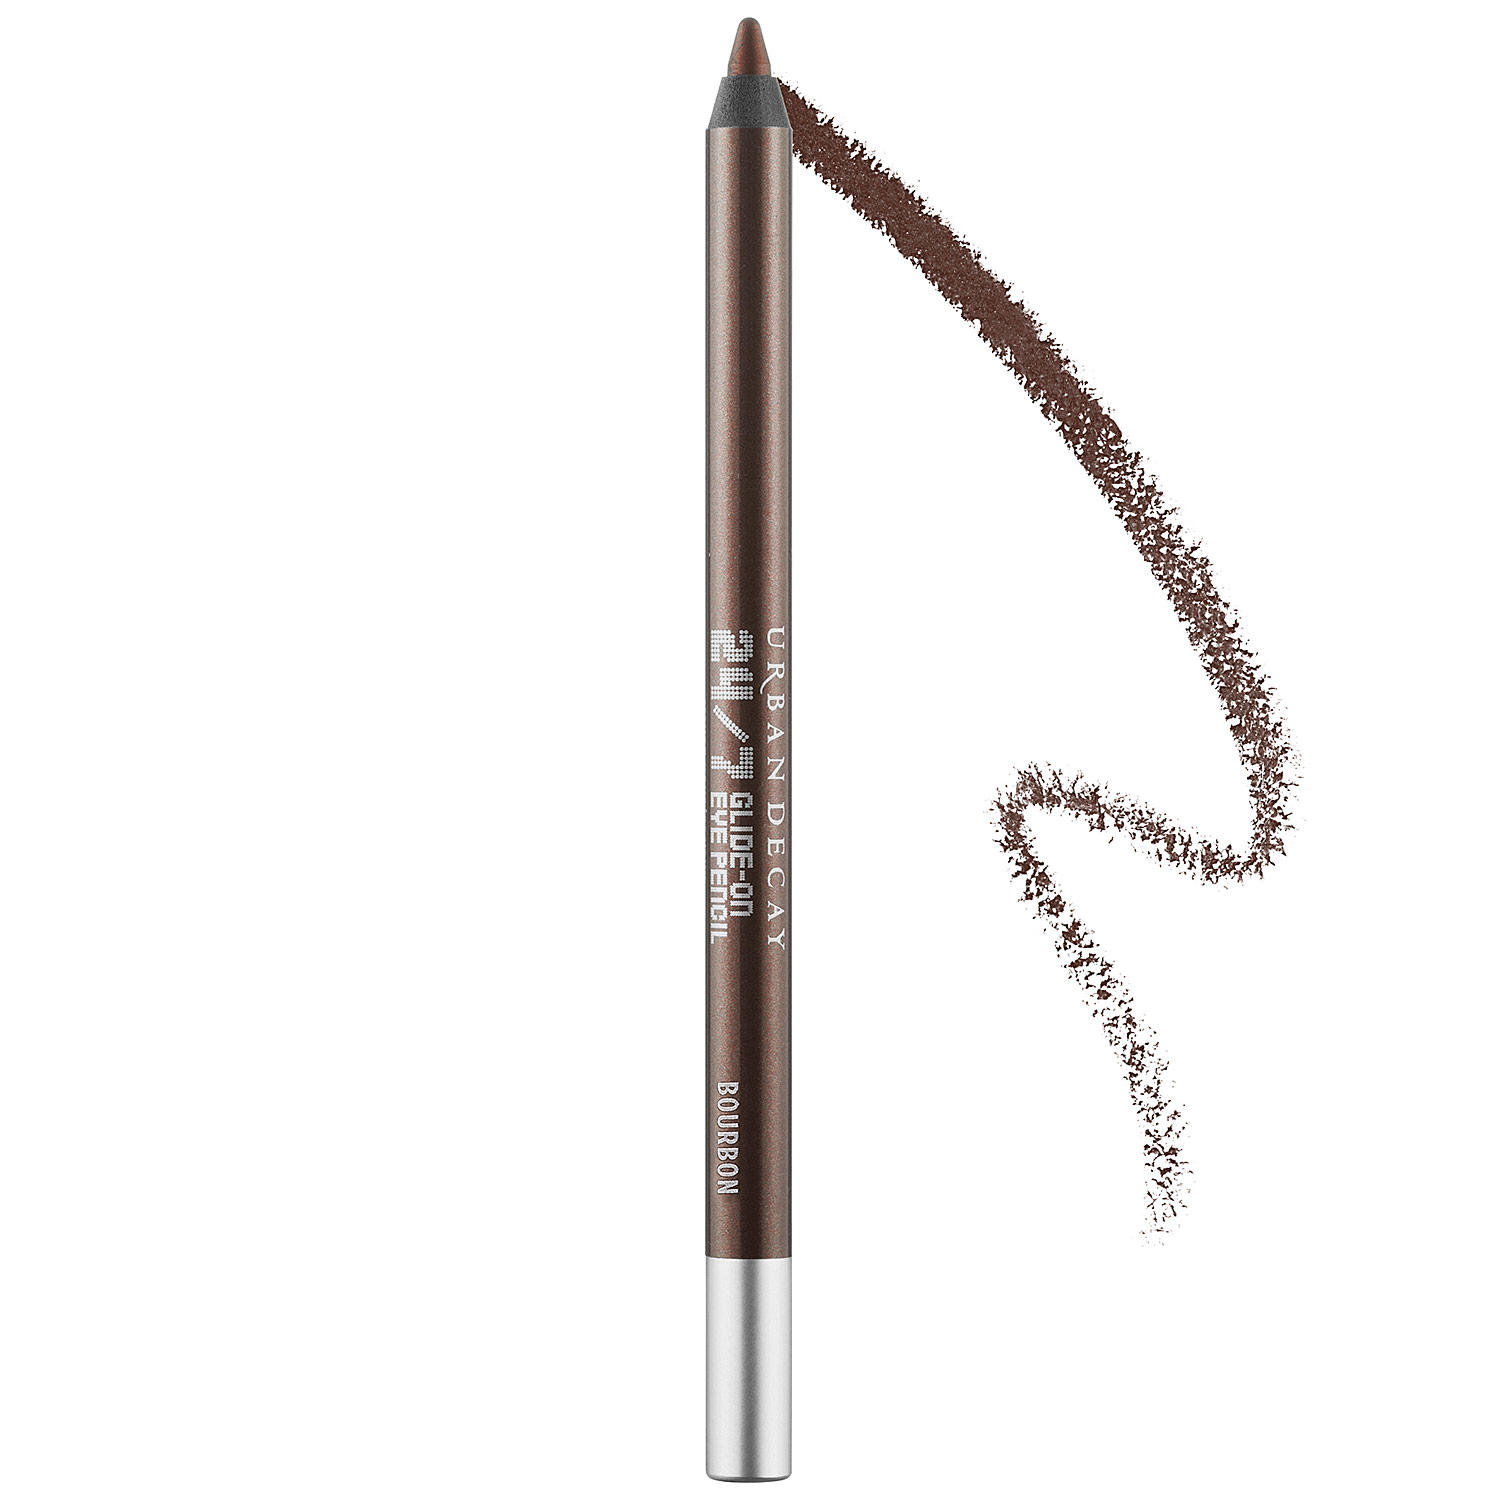 Urban Decay 24/7 Glide-On Eyeliner Pencil Bourbon